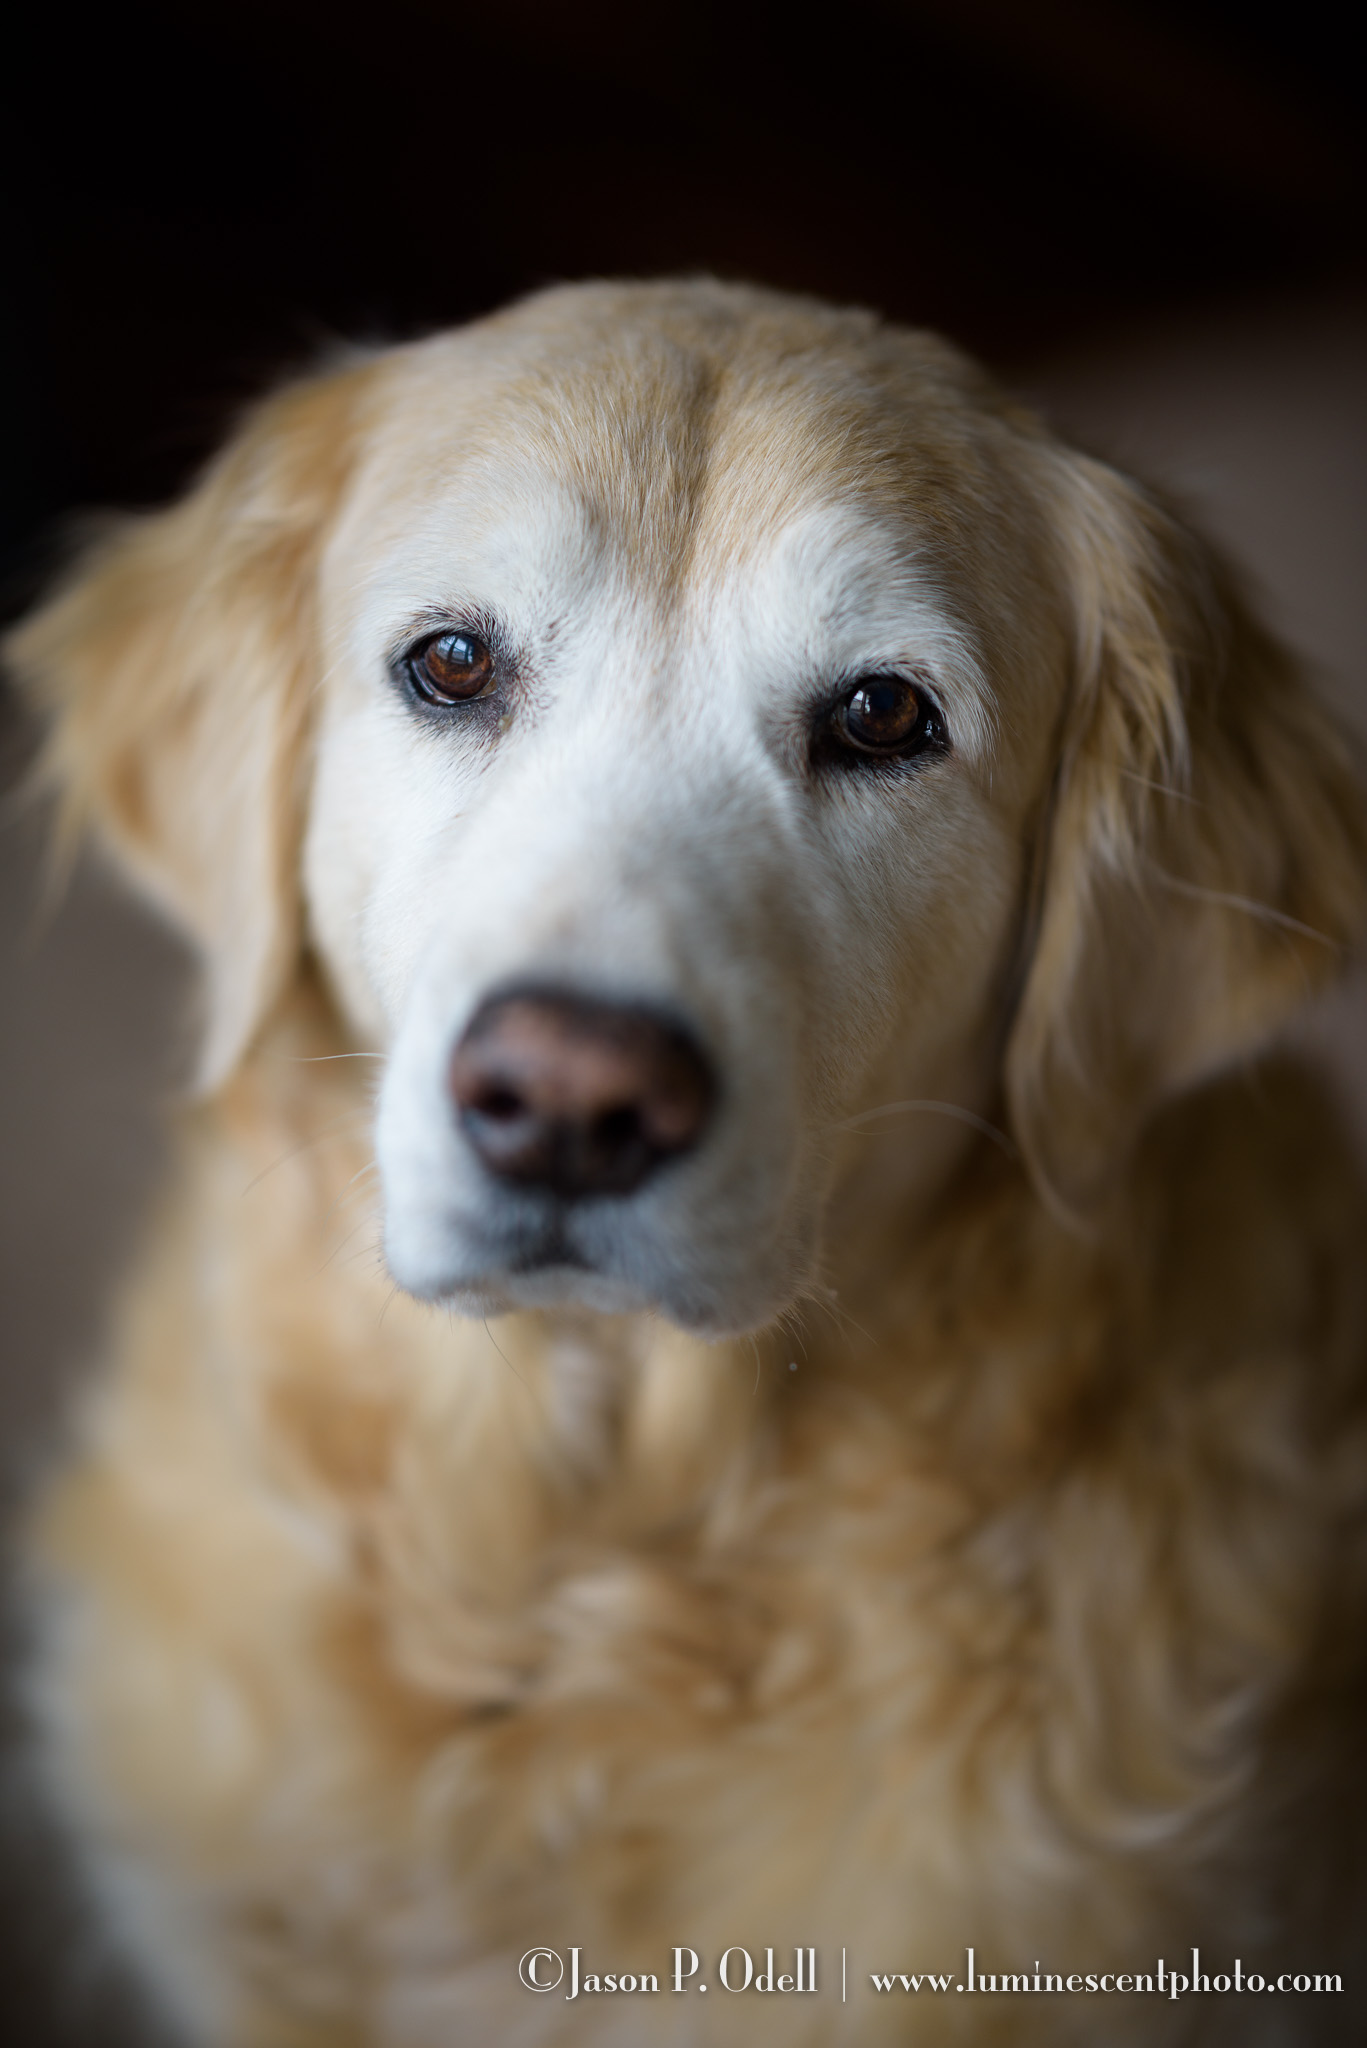 Nikon D810 with 105mm f/1.4E ED Nikkor. 1/250s f/1.4, ISO 100. (Click to enlarge)